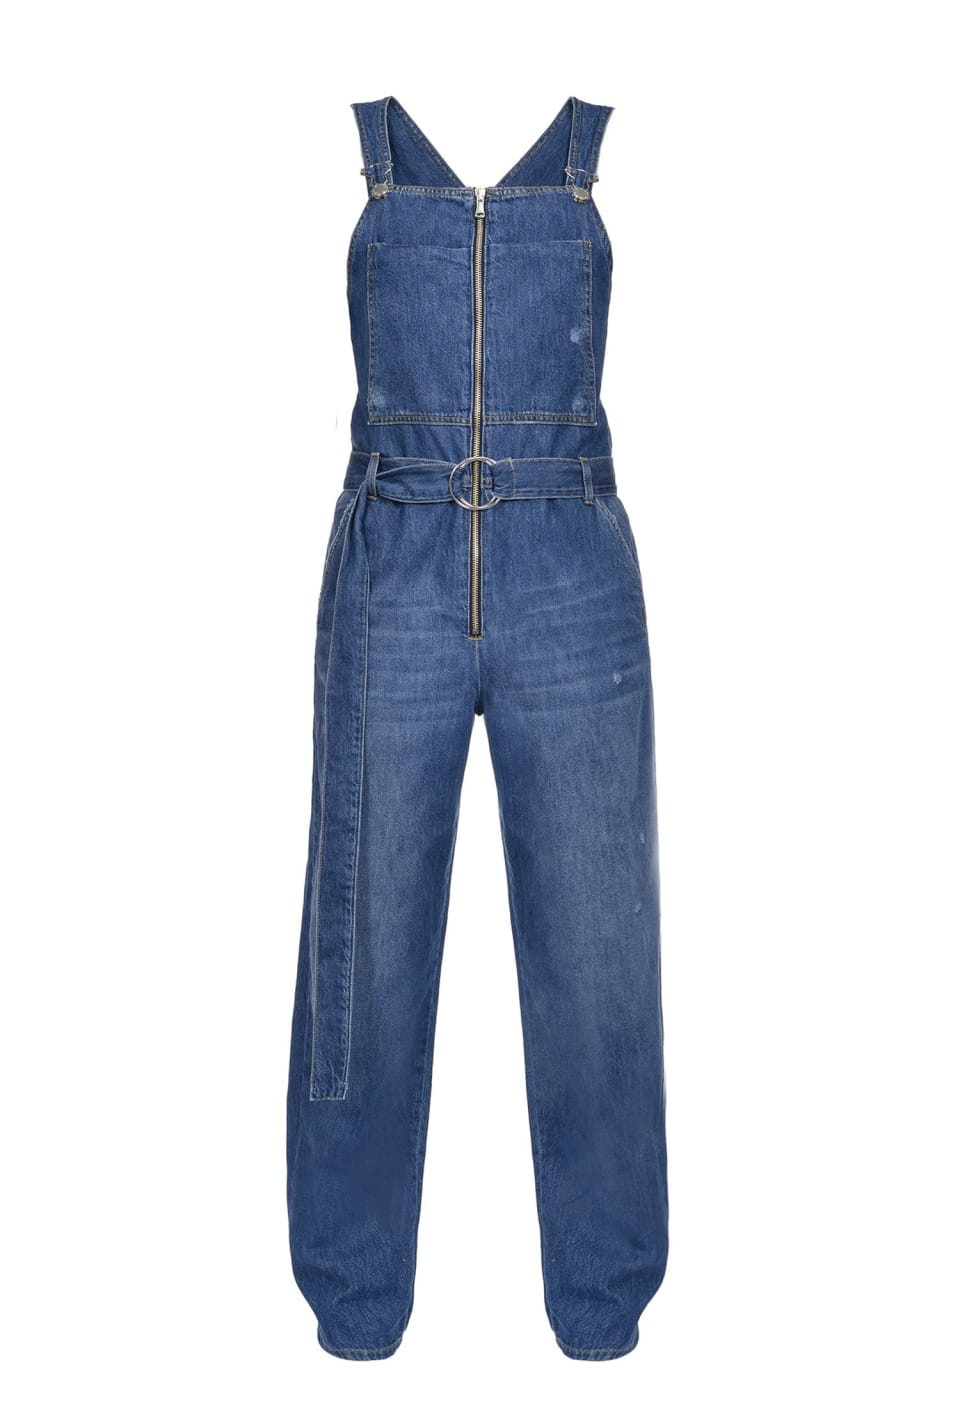 Salopette in jeans - Pinko